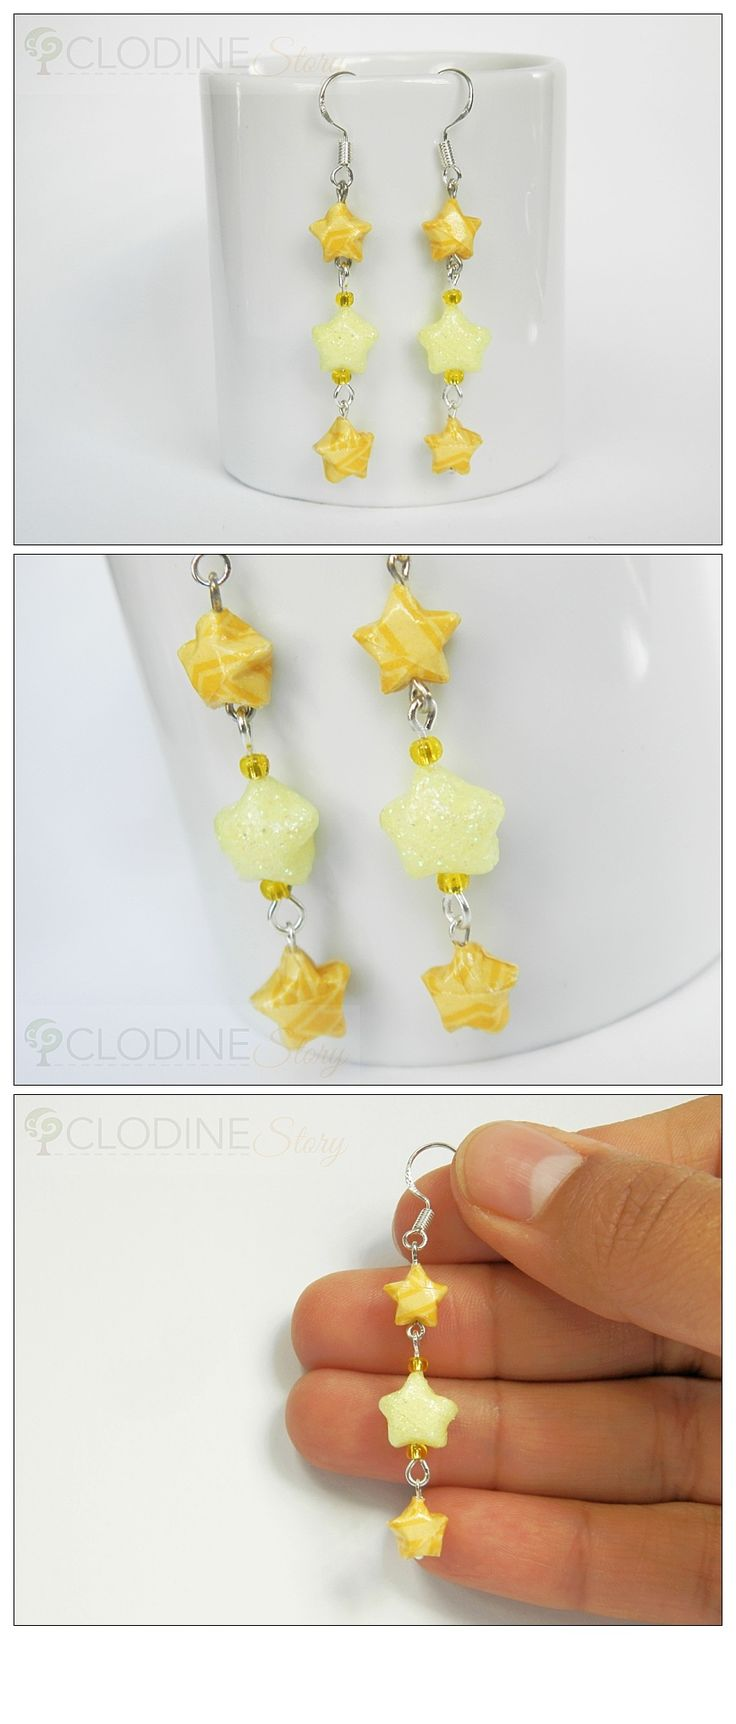 Best 25+ Origami jewelry ideas on Pinterest | H&m origami ... - photo#23